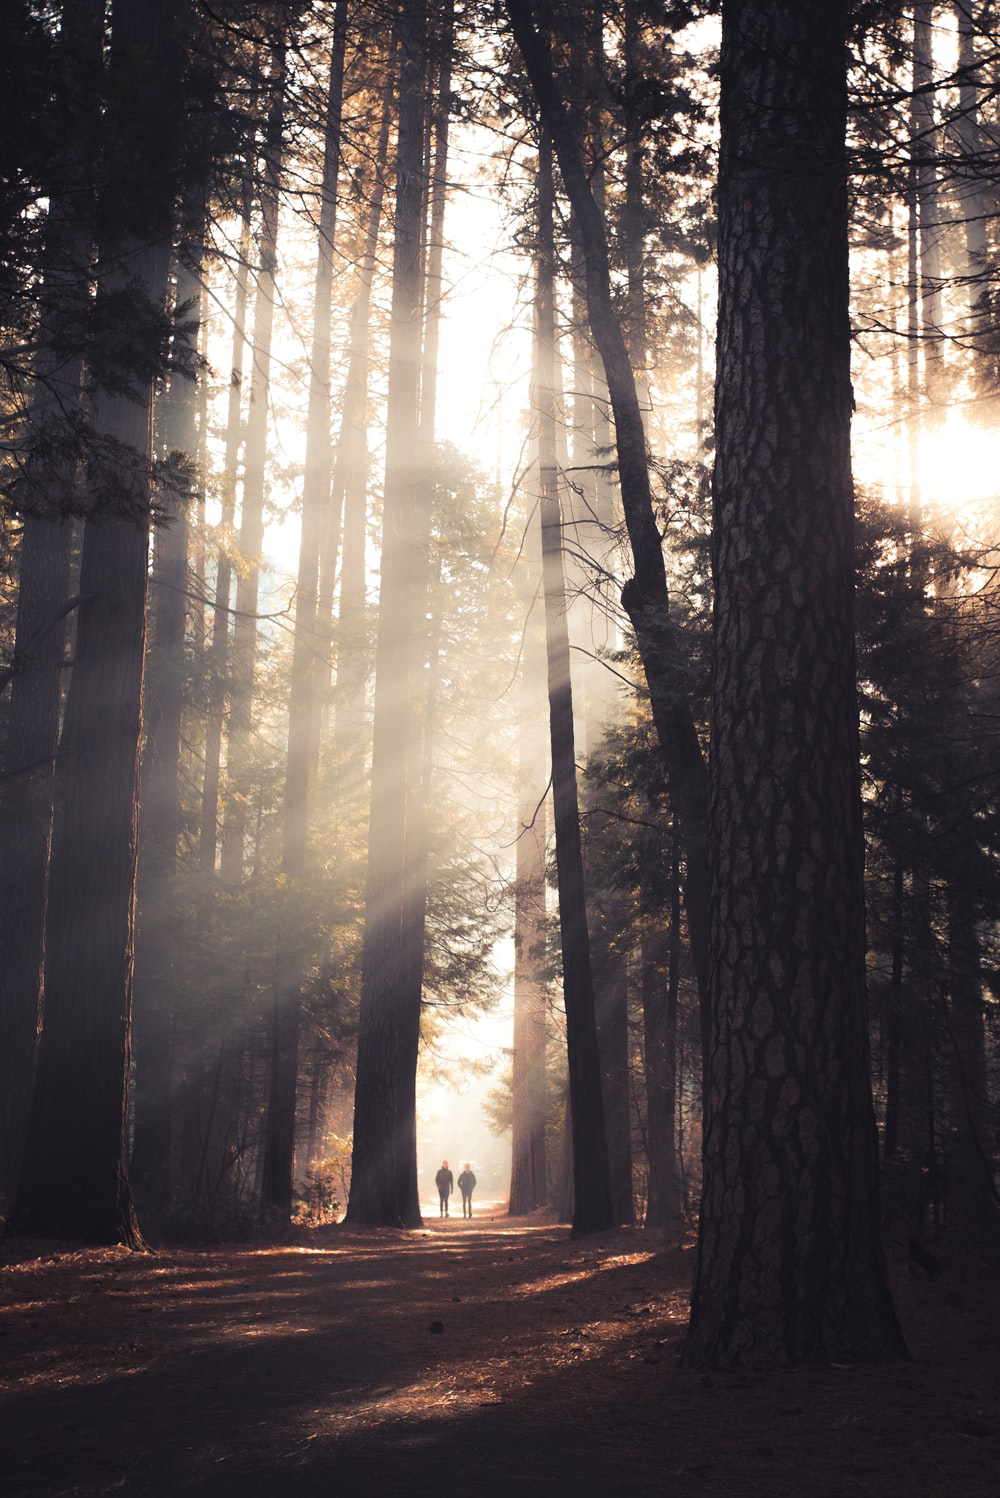 two person walking in the middle of tall trees